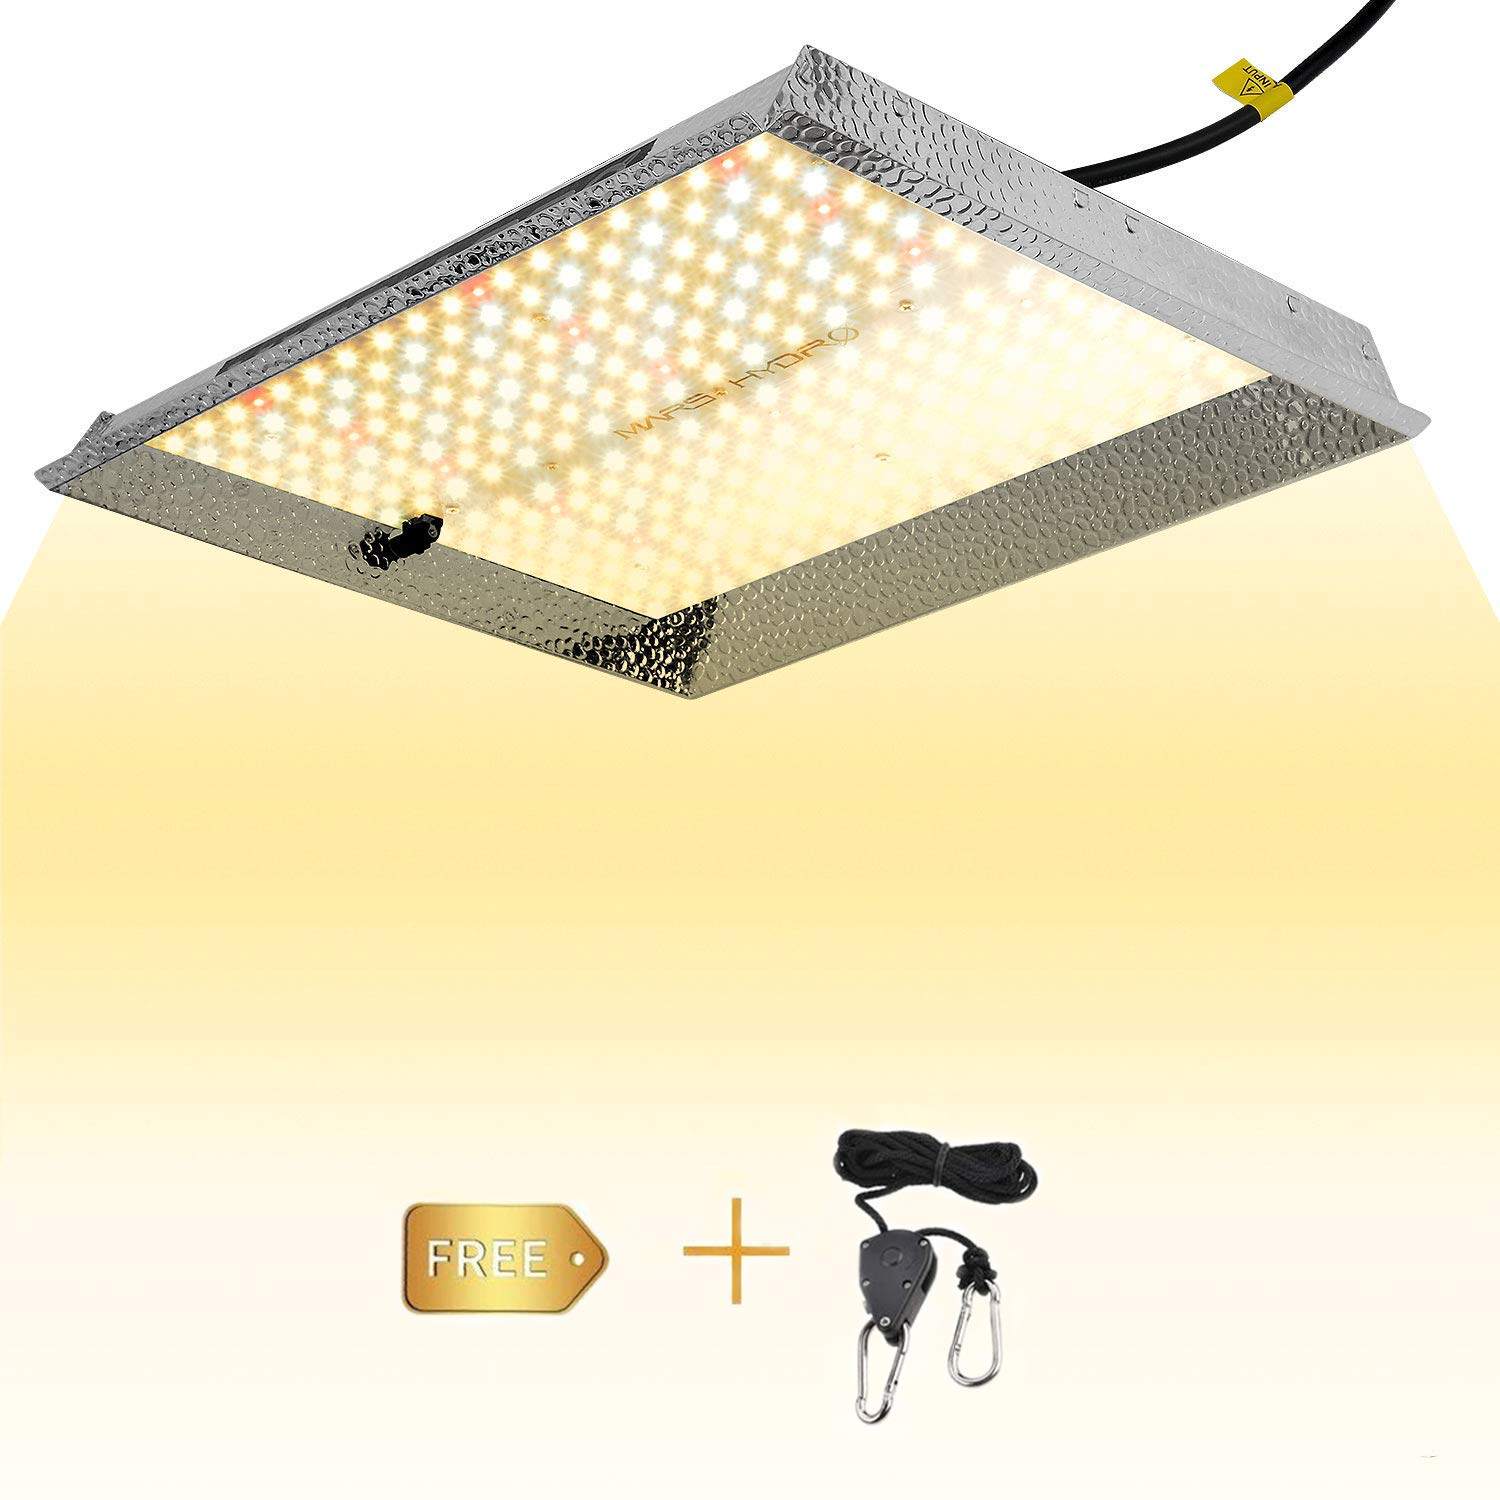 MARS HYDRO TS 1000W Led Grow Light Sunlike Full Spectrum LED Growing Lights for Indoor Plants Greenhouse Veg Bloom with Updated 342 LEDs Hydroponic Led Growing Lamps with Hanger Actual Power 150Watt by MARS HYDRO